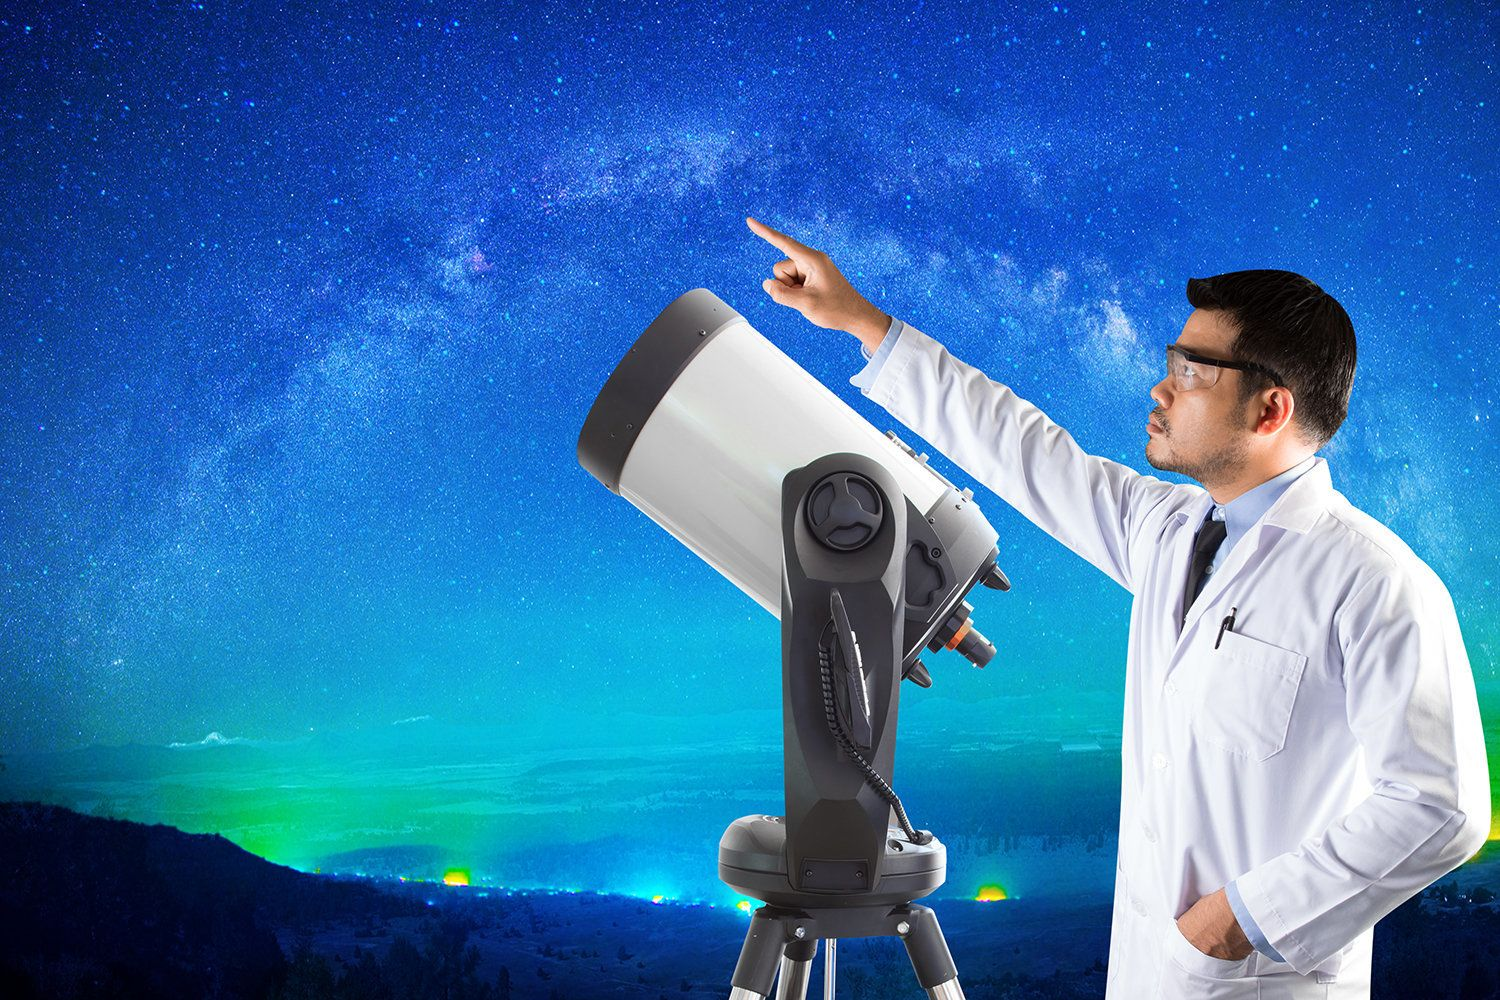 Astronomer pointing at milky way and space telescope of observatory. elements of this image furnished by NASA.